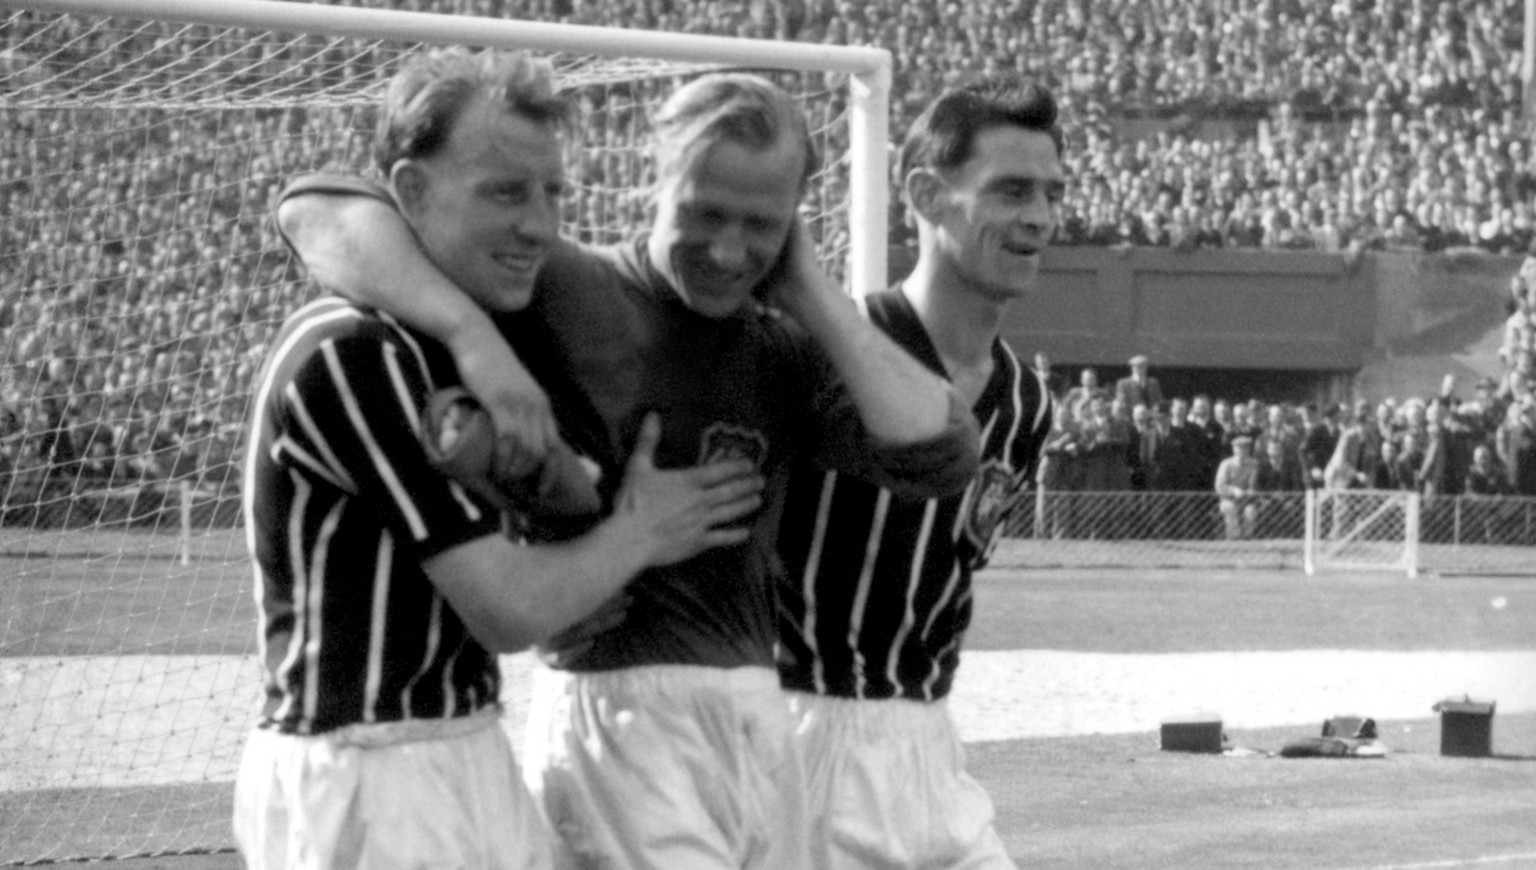 "FILE - A May 5, 1956 photo from files of Bernd Trautmann, more commonly known as Bert, Manchester City's German-born goalkeeper, centre, being assisted from the pitch by two unidentified players, suffering from a broken neck, during the FA Cup final against Birmingham, at London's Wembley Stadium. The German football federation said Friday, July 19, 2013, that Trautmann died in La Llosa, near Valencia, Spain, where he lived. Trautmann's wife Marlies told the federation he died Friday morning. Trautmann had suffered two heart attacks this year but appeared to have recovered well. Manchester City called Trautmann one of the club's ""greatest goalkeepers of all time and a true club legend.""  (AP Photo/PA, File) UNITED KINGDOM OUT  NO SALES  NO ARCHIVE"